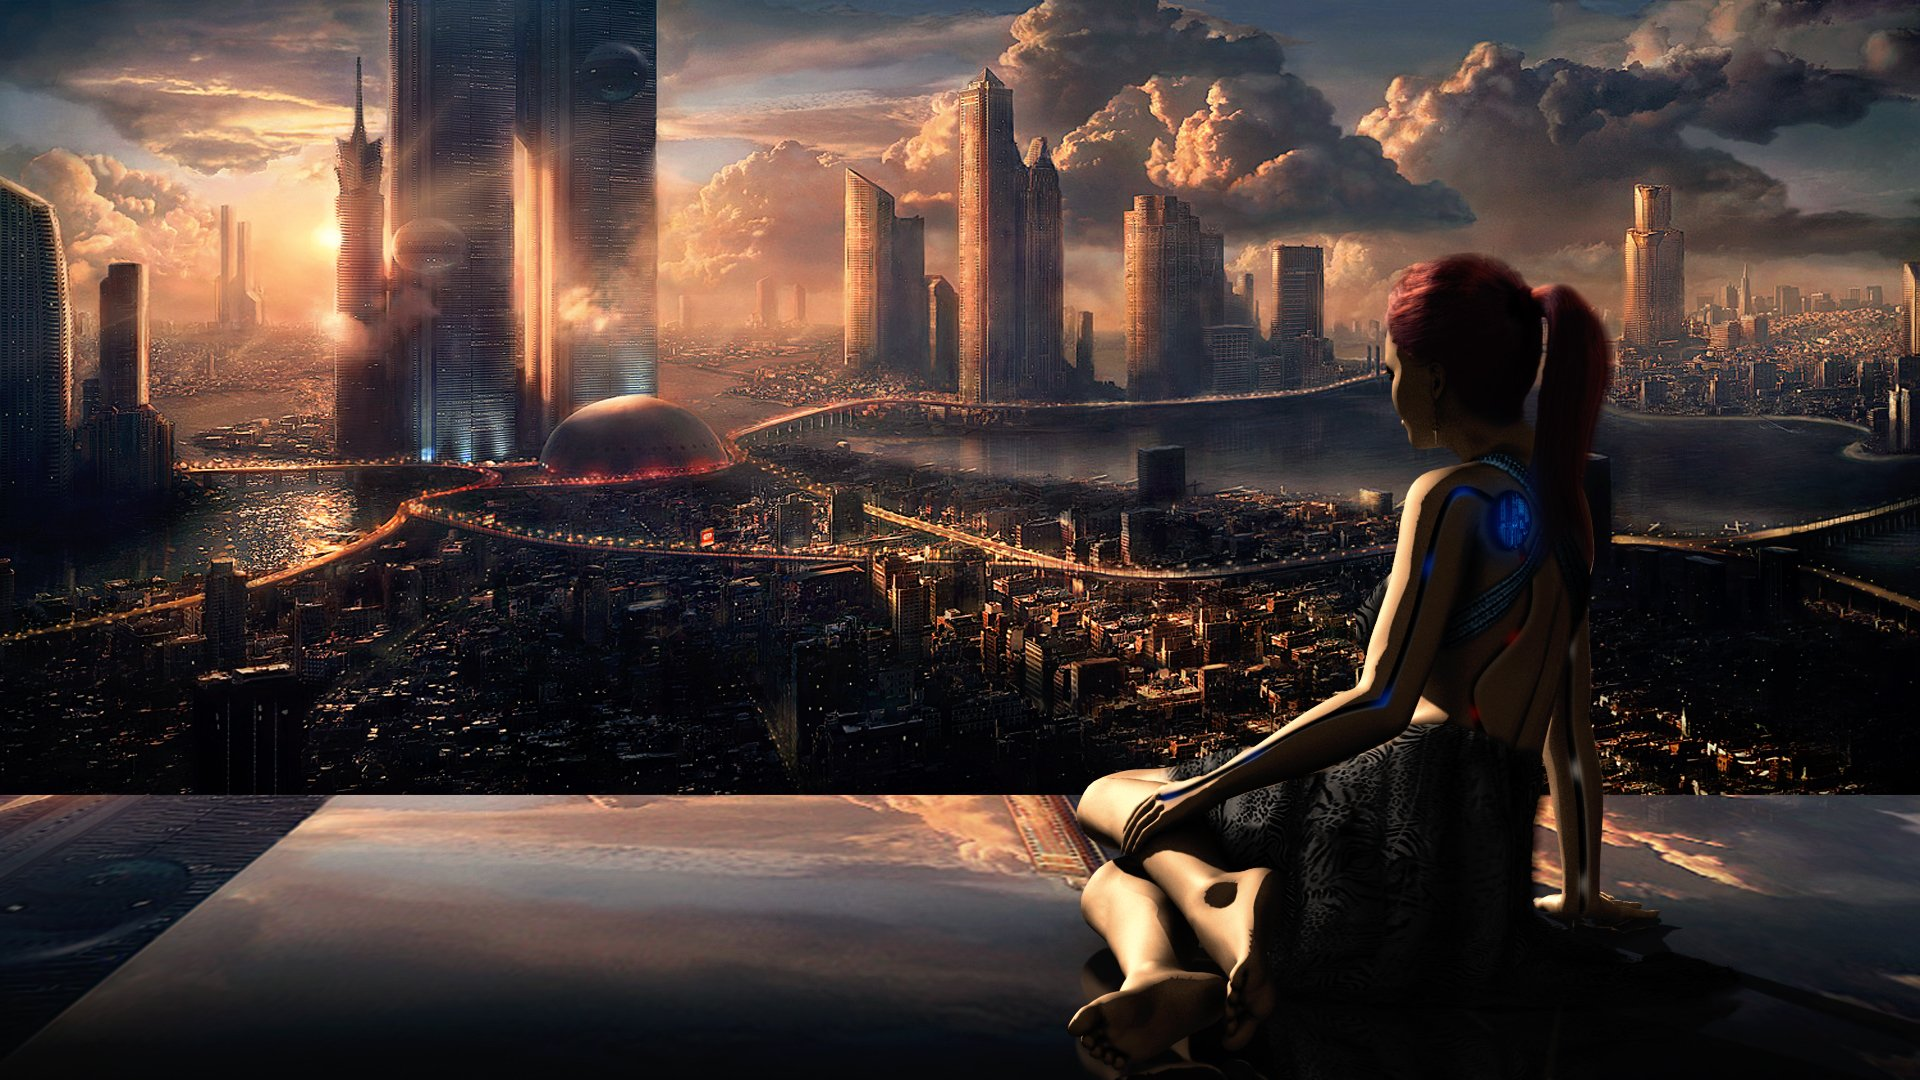 Science-Fiction - Großstadt  Sonnenuntergang Spiegelung Roboter Science-Fiction Futuristic City Wallpaper